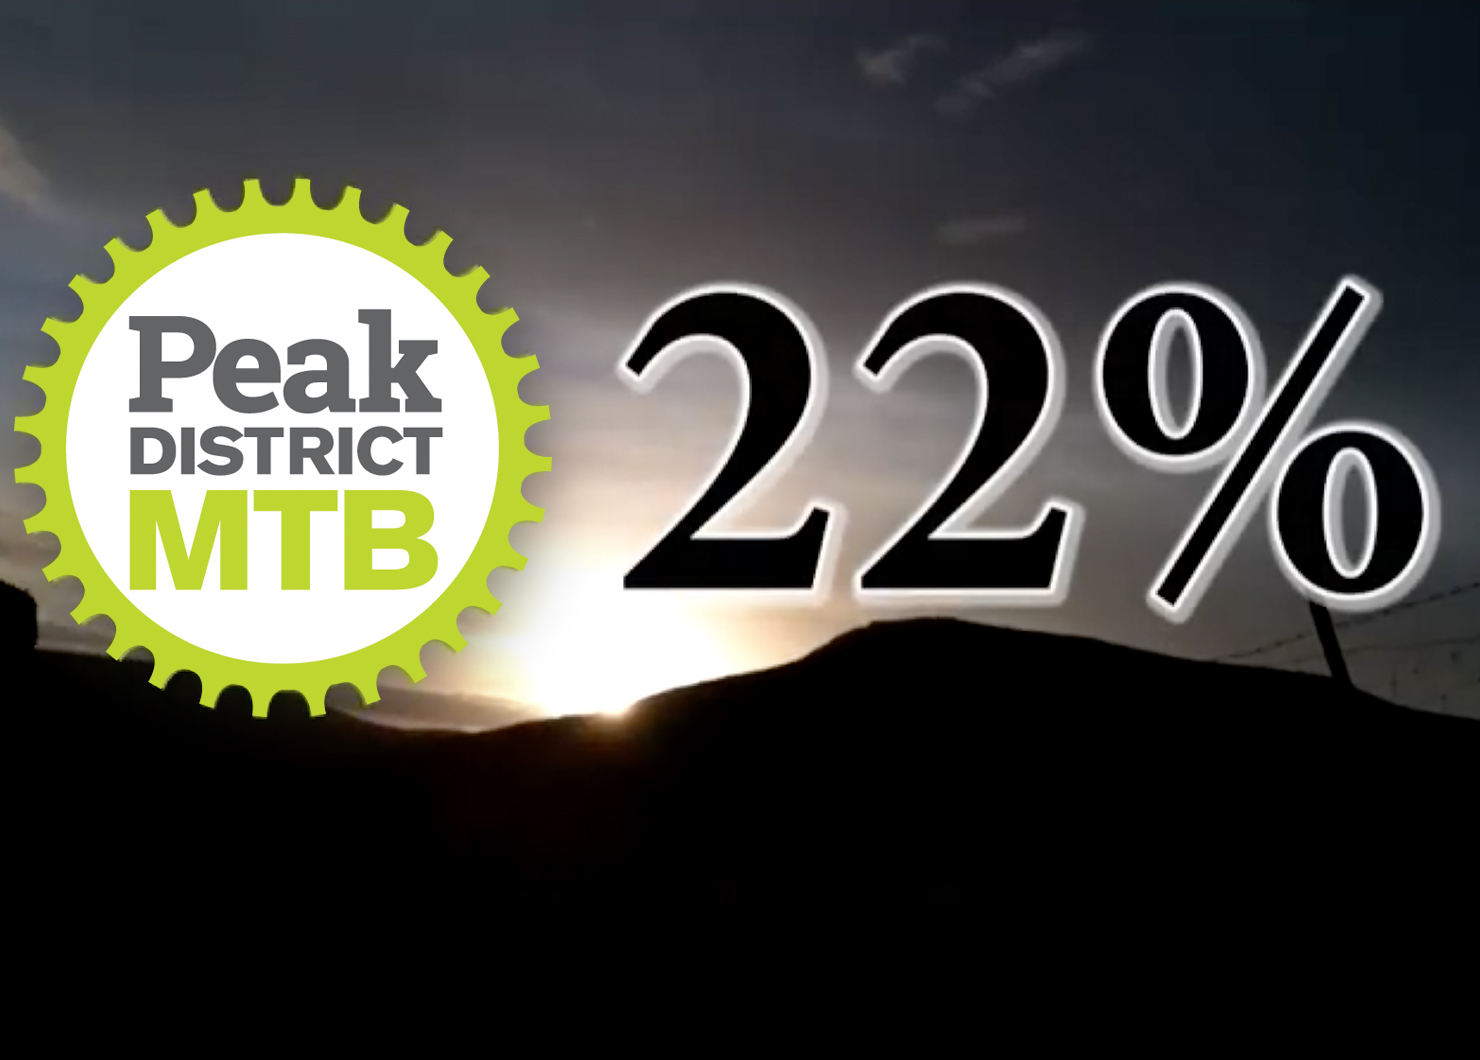 22% campaign Peak District MTB